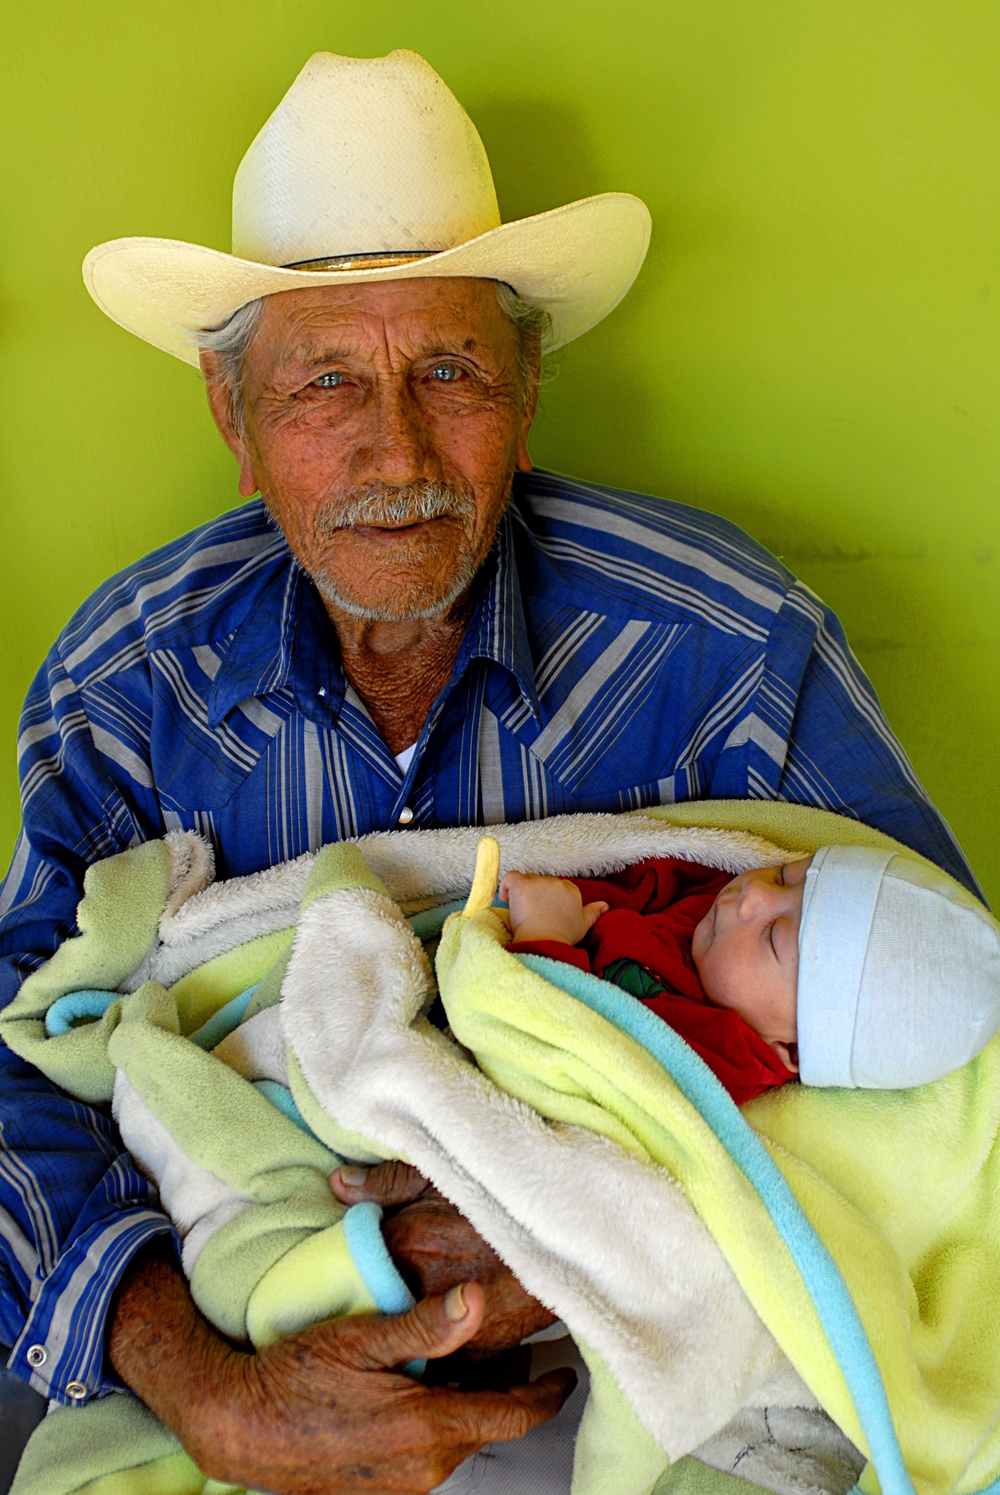 Don Gaston holds his great-grandson, Diego, for the first time. Photo by Rocket Queen Imaging. All rights reserved.